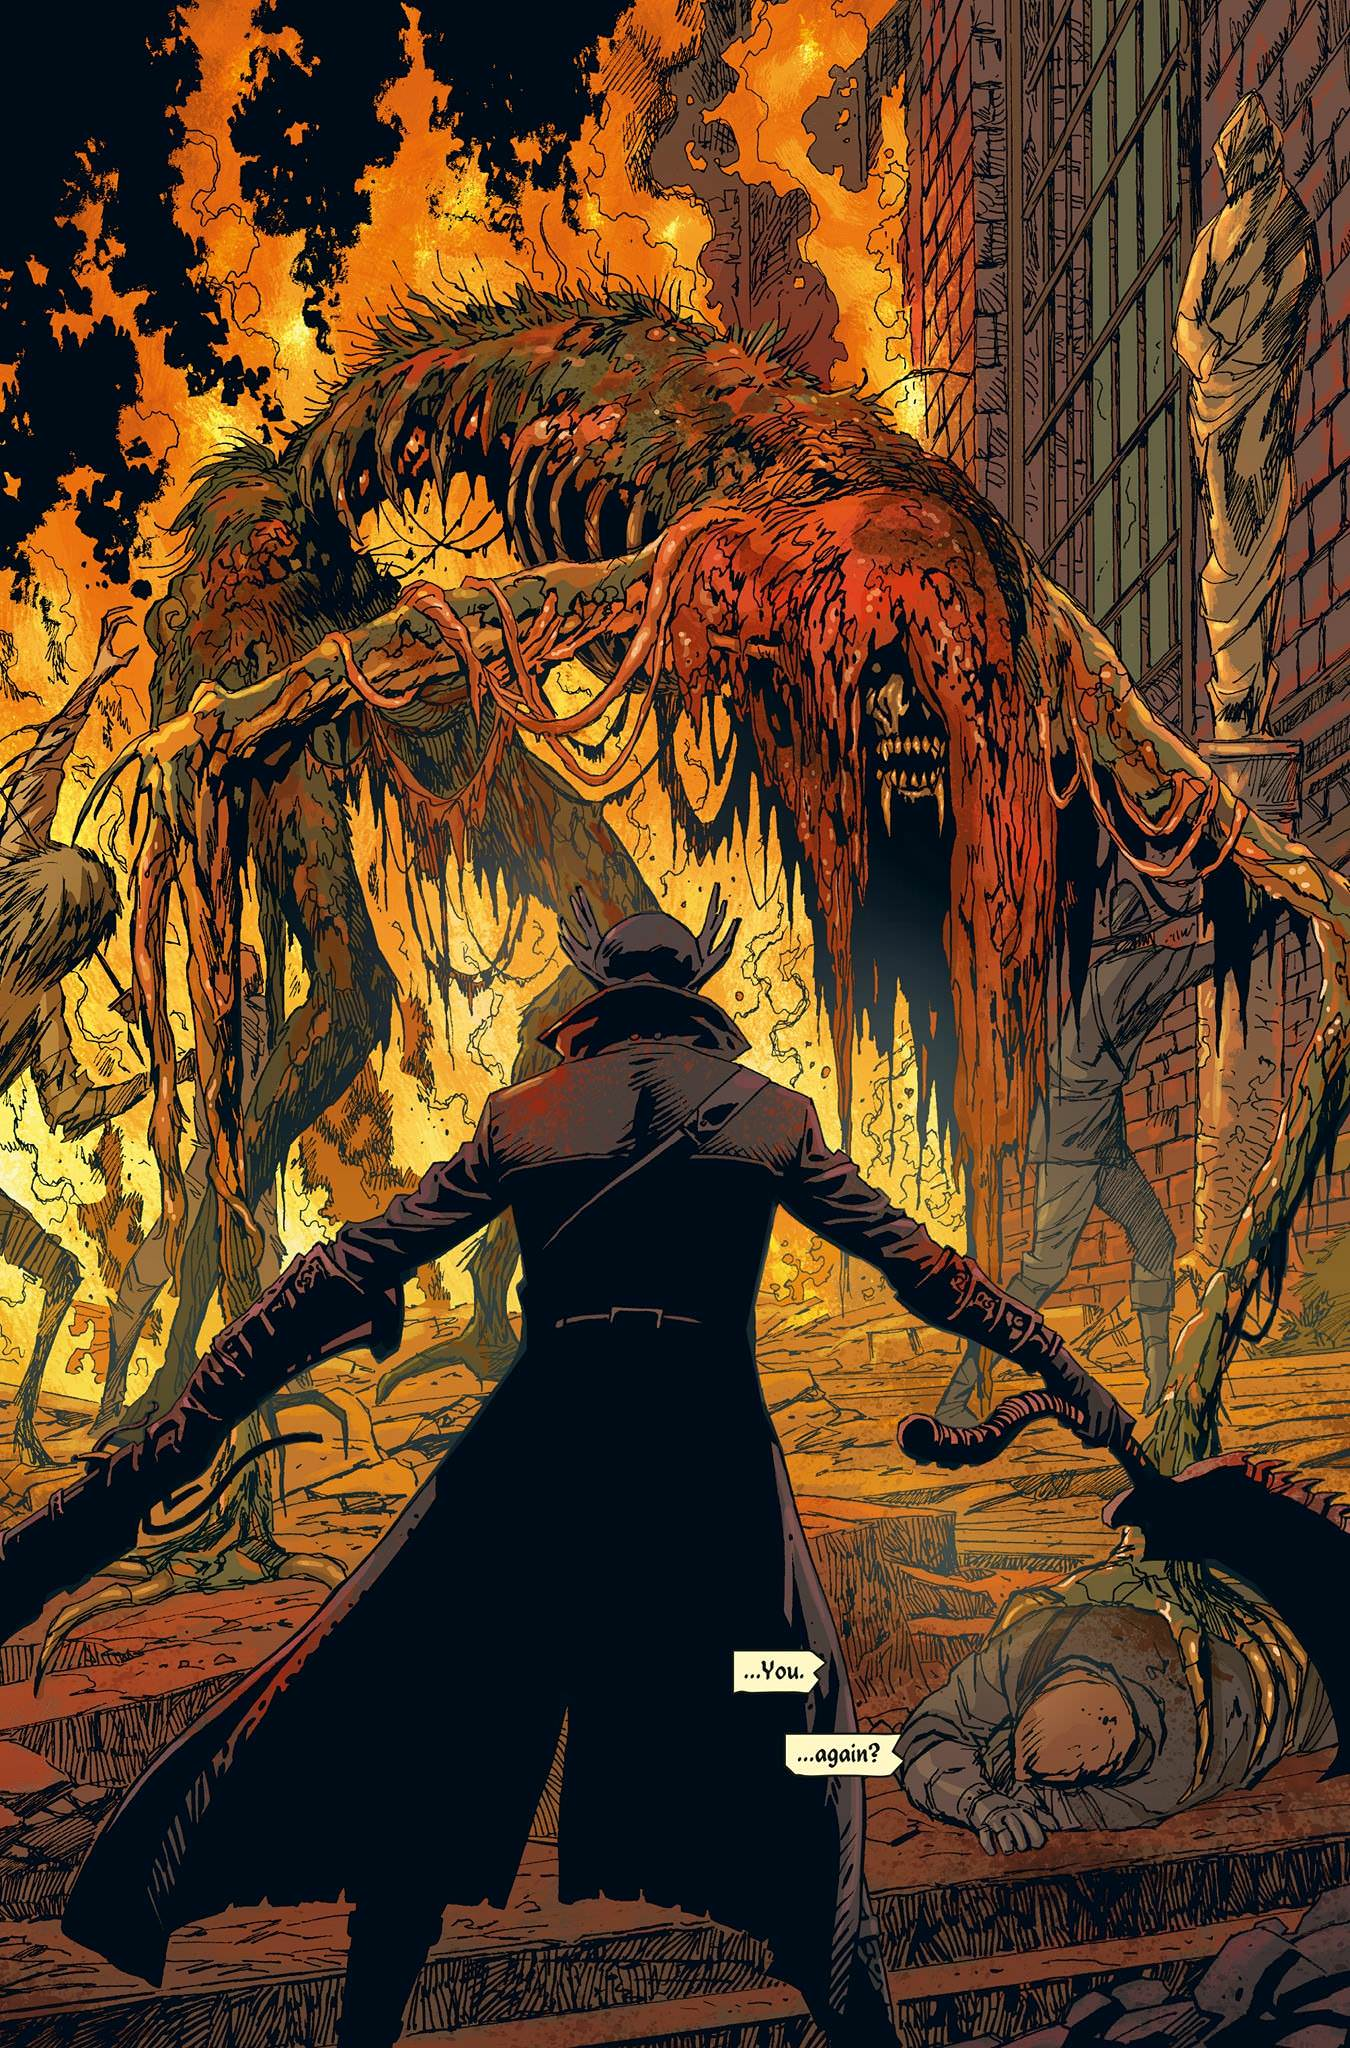 The Hunter and a monster in Bloodborne: The Death of Sleep, a comic tie-in.